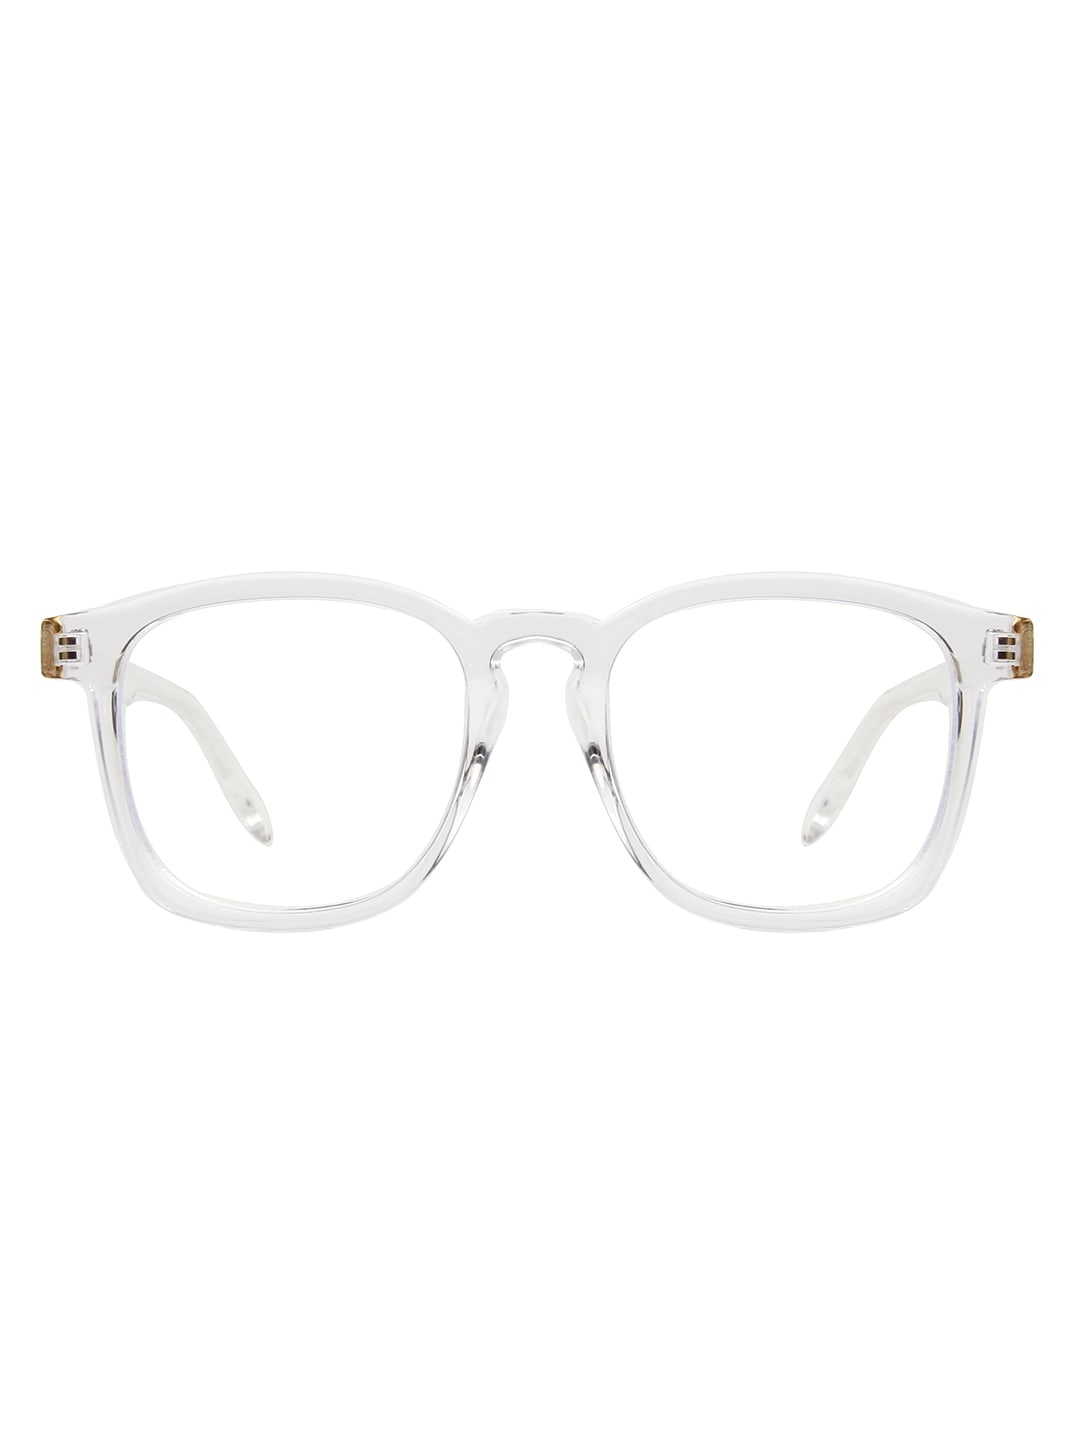 Sleek Square Sunglasses - Clear - Front